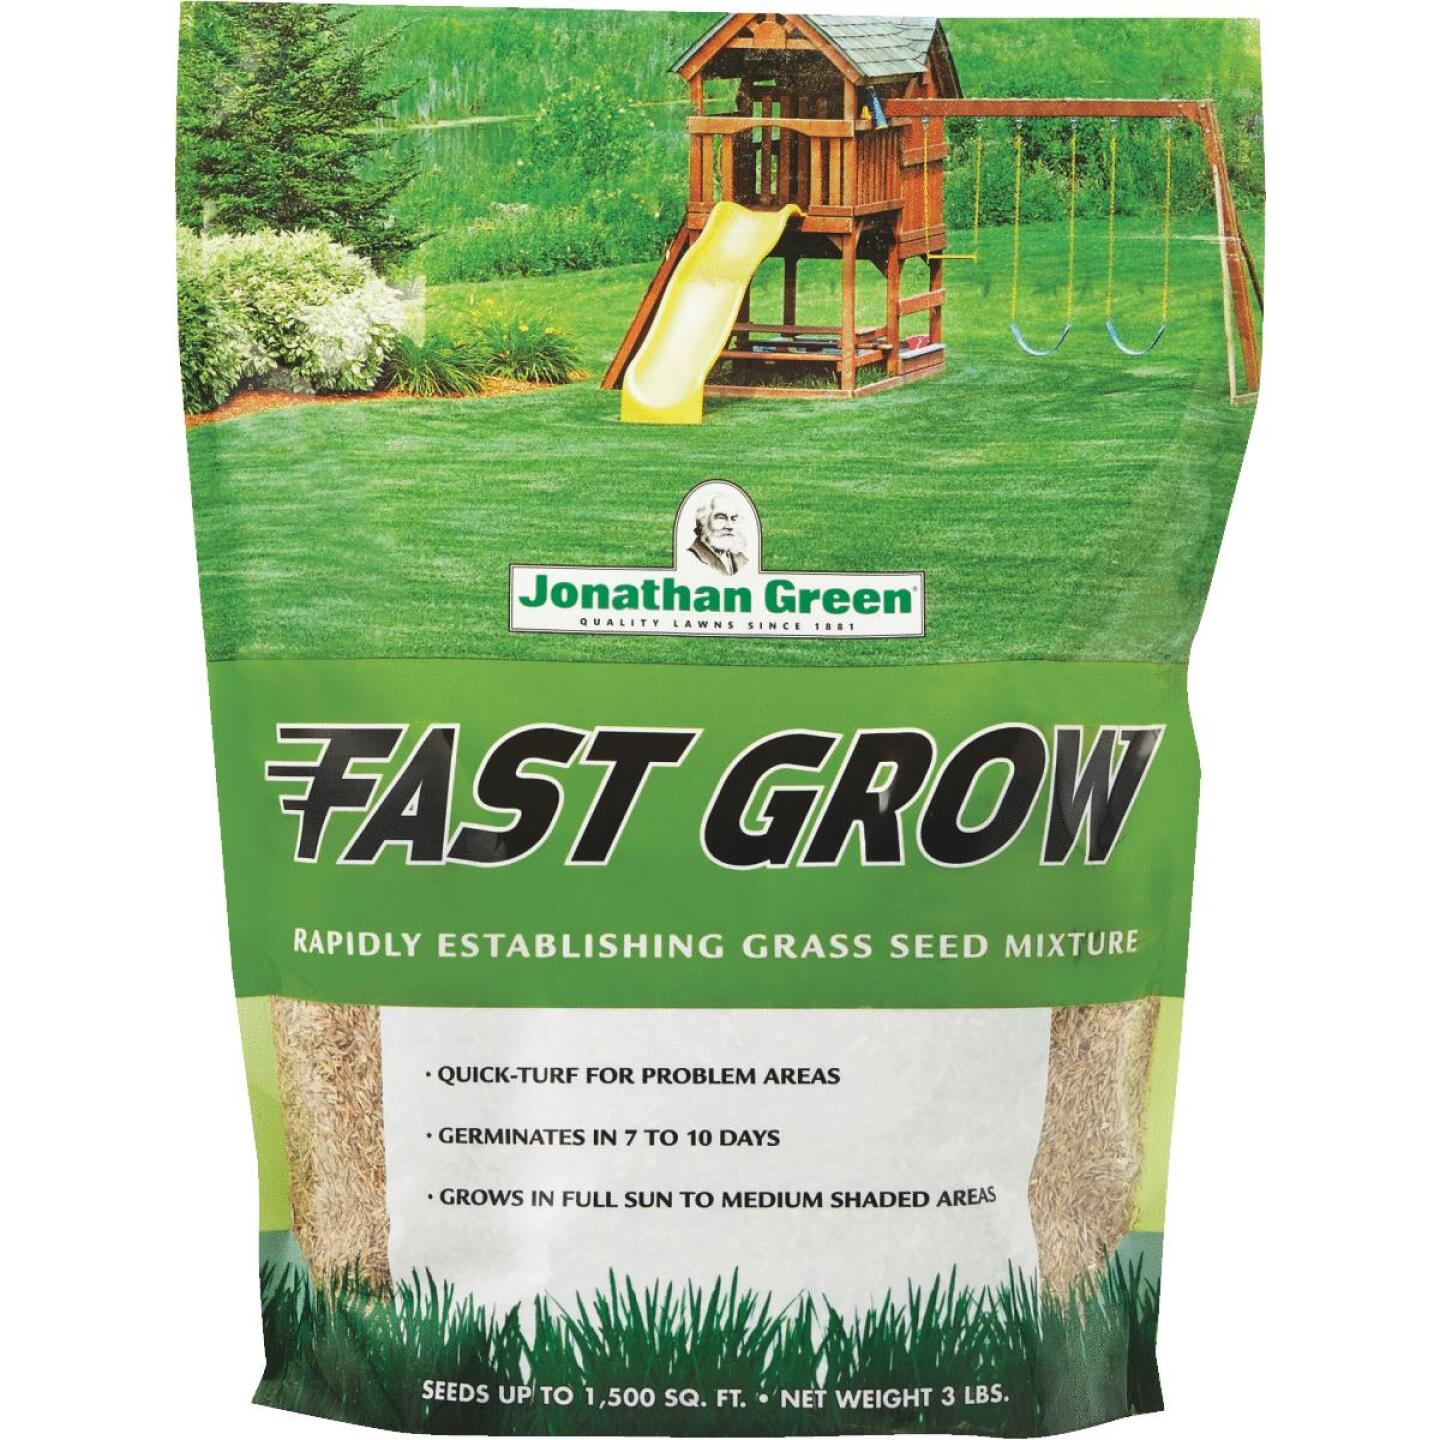 Jonathan Green Fast Grow 3 Lb. 750 Sq. Ft. Coverage Ryegrass & Fescue Grass Seed Image 1